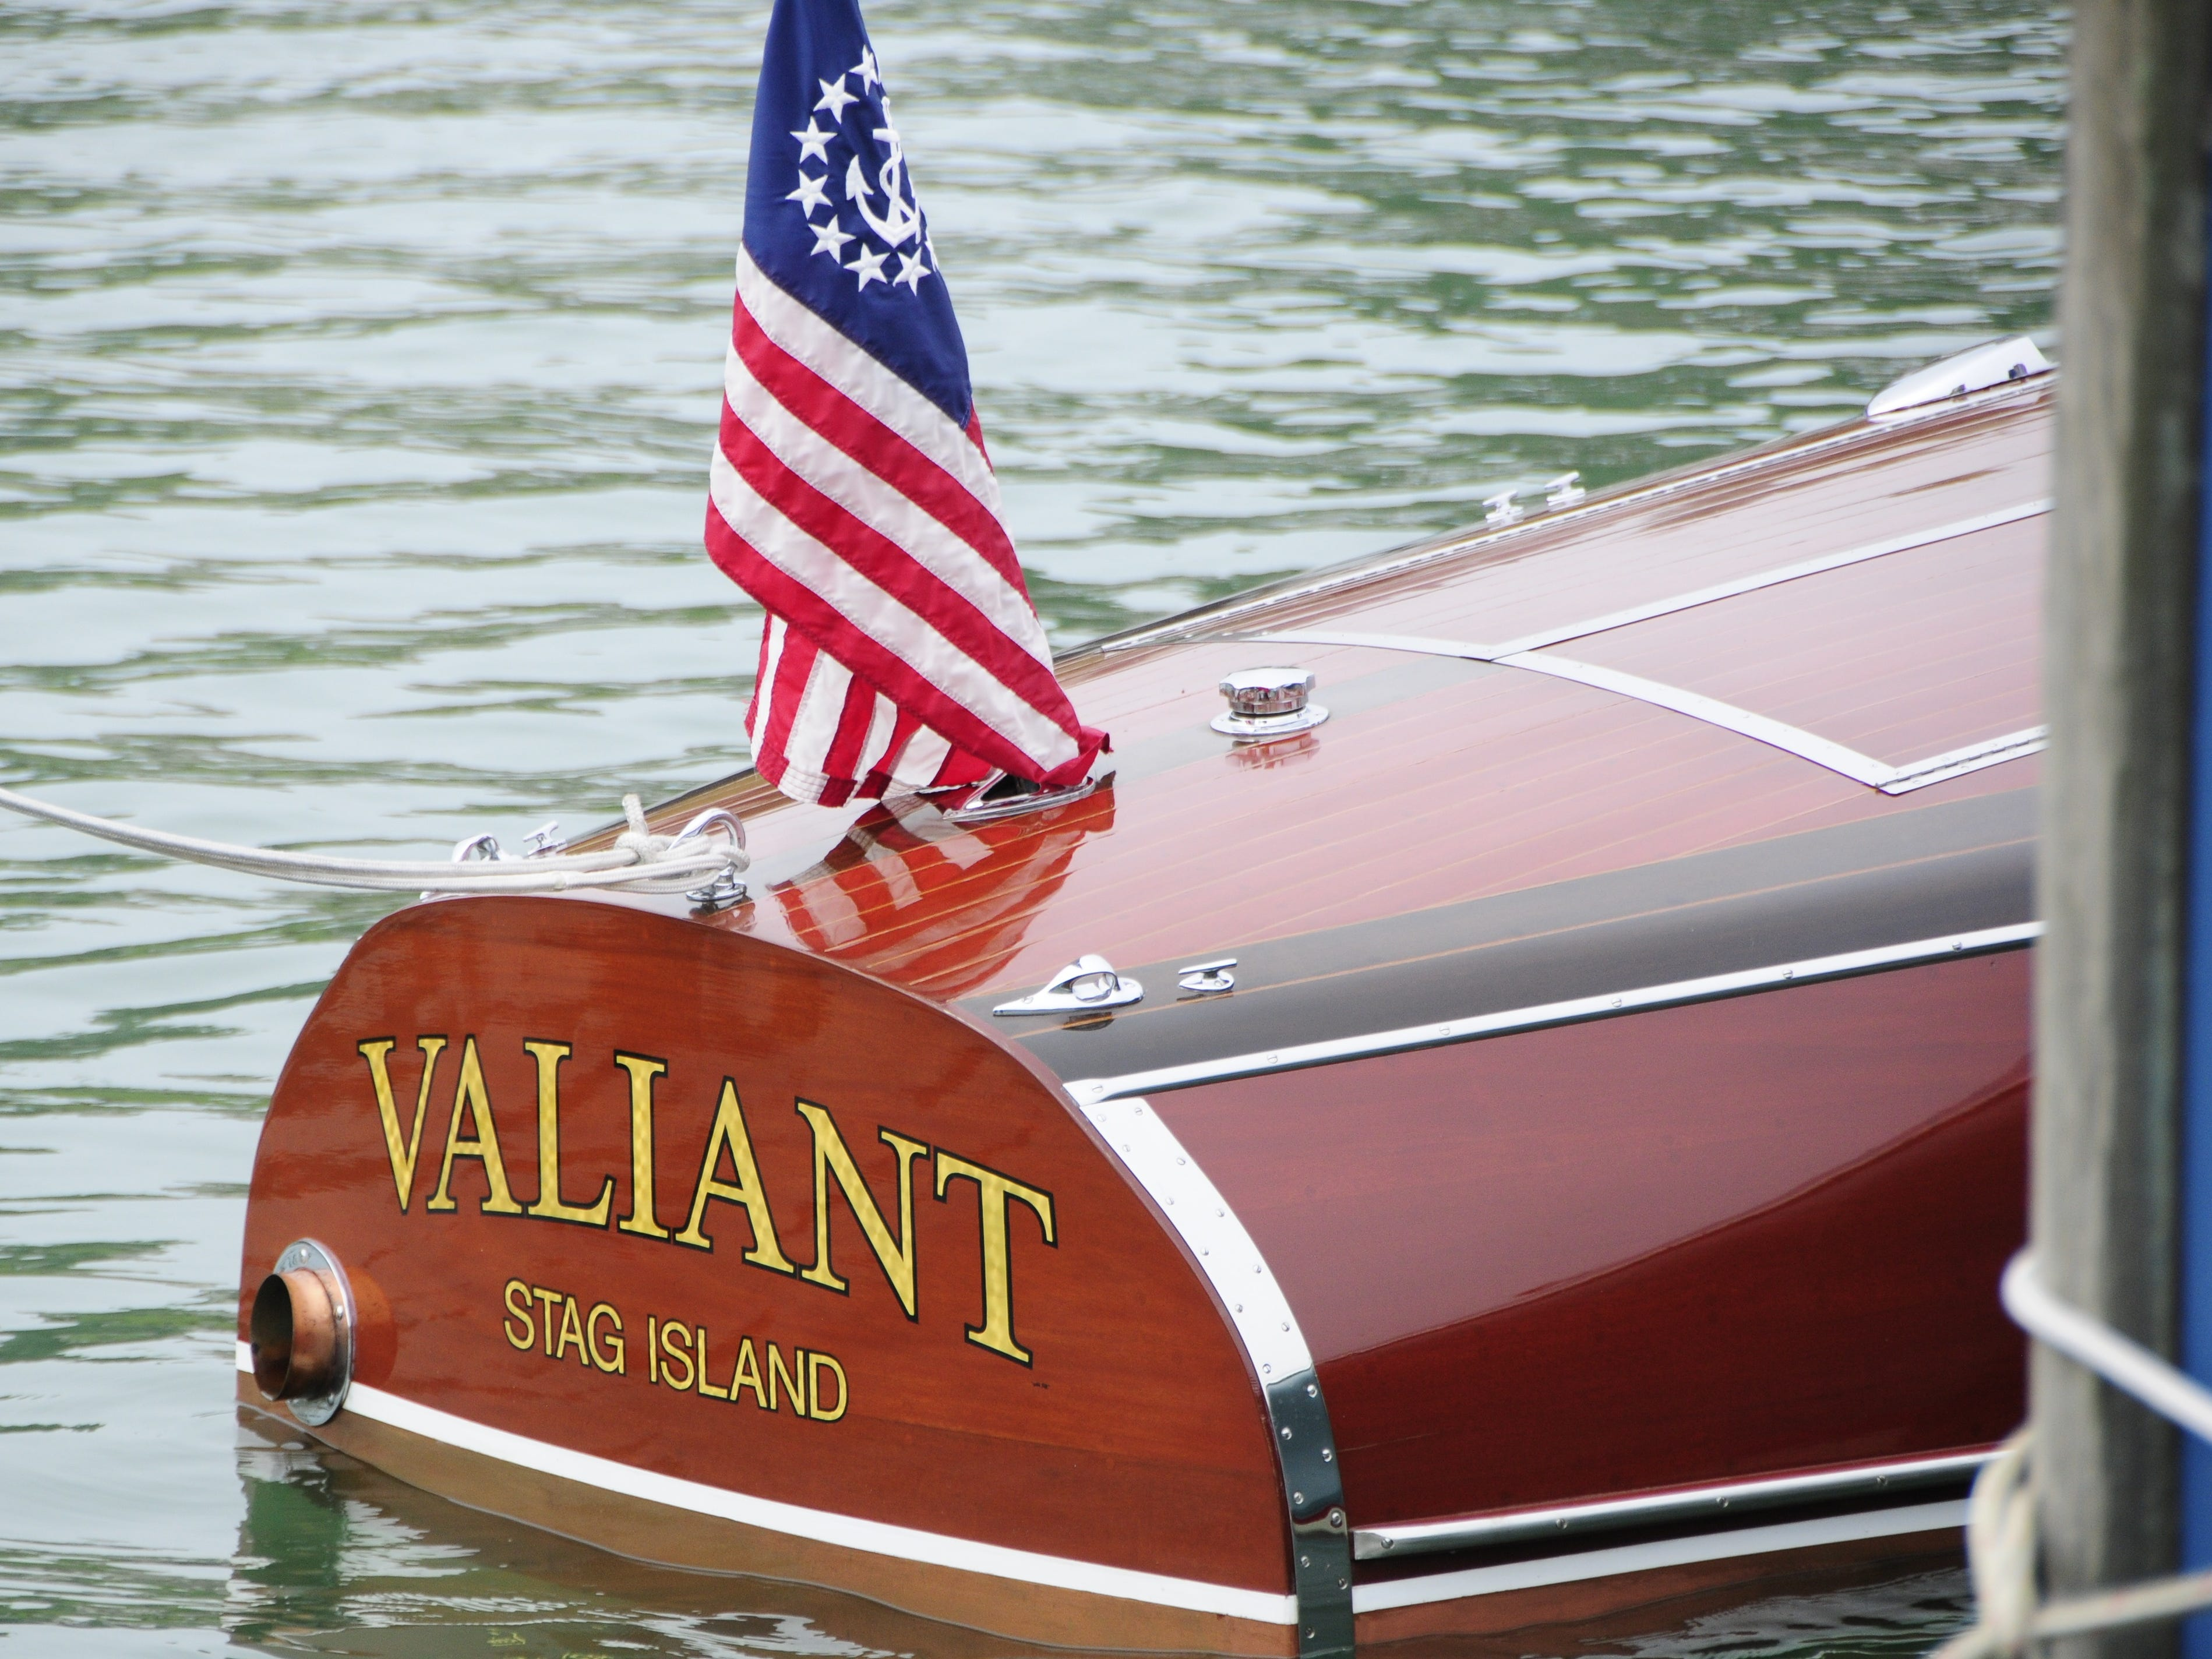 The Valiant came from Stag Island for the Antique and Classic Boat Society International Boat Show on Saturday, Sept. 15, 2018.